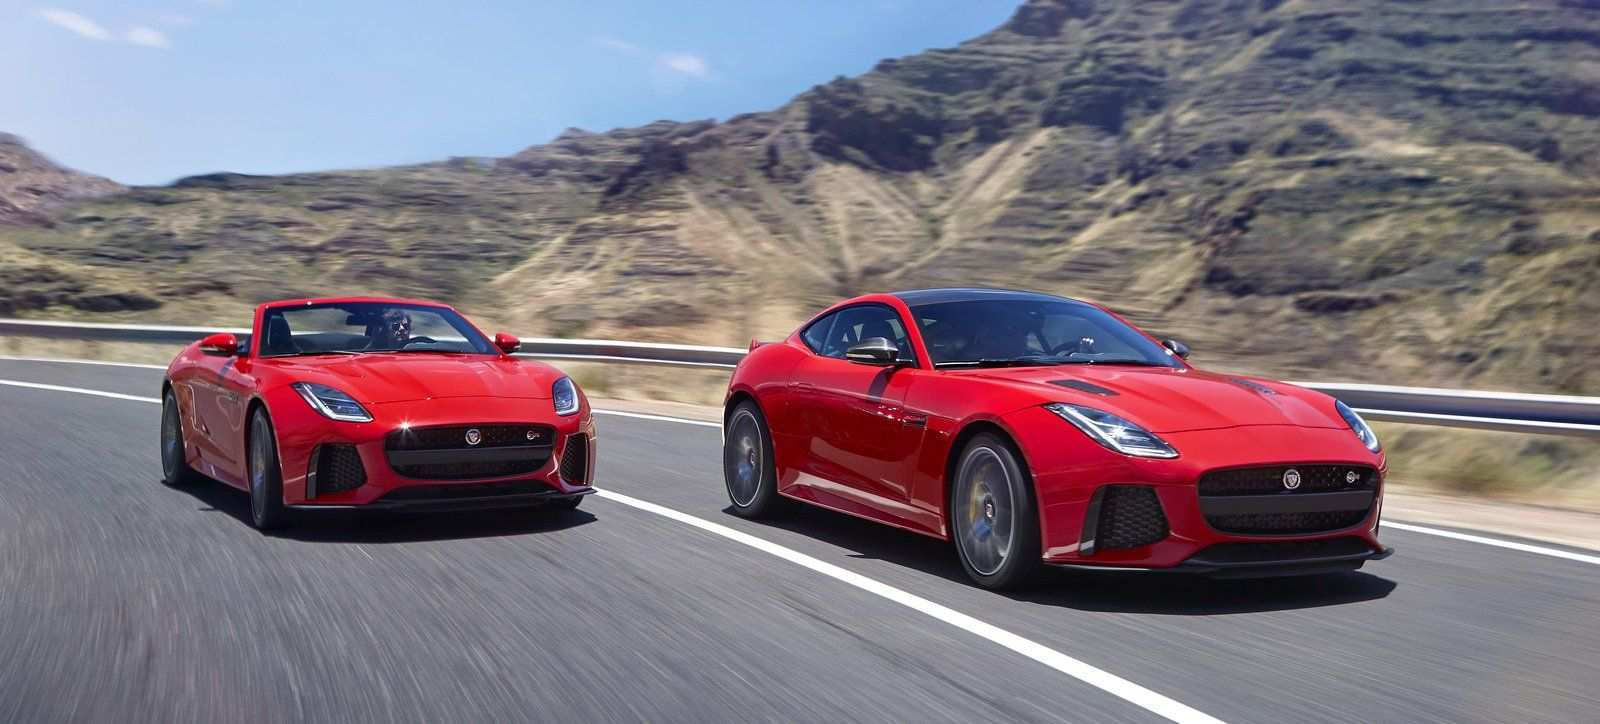 55 Concept of 2020 Jaguar F Type Horsepower Price for 2020 Jaguar F Type Horsepower